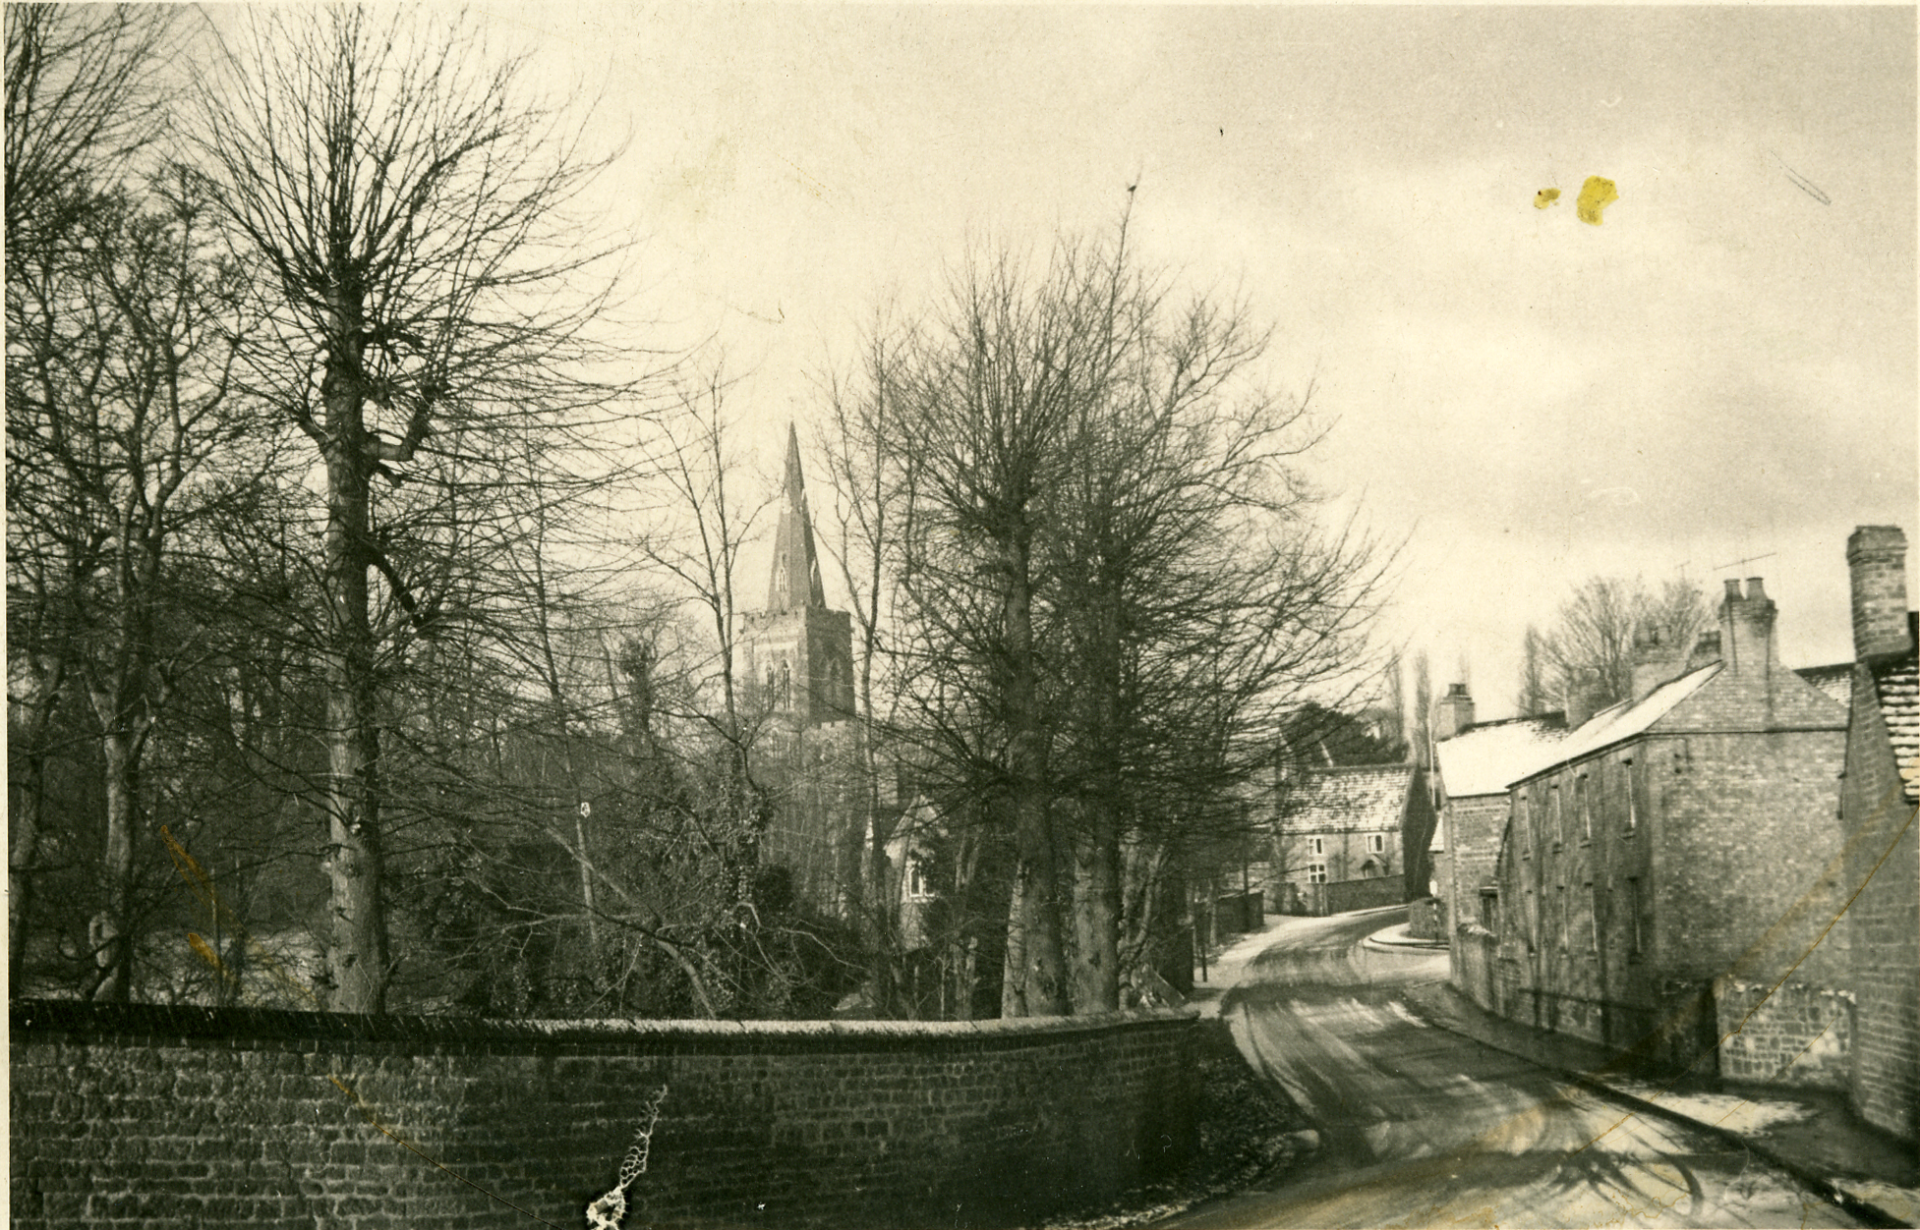 Stocks Hill, c1900